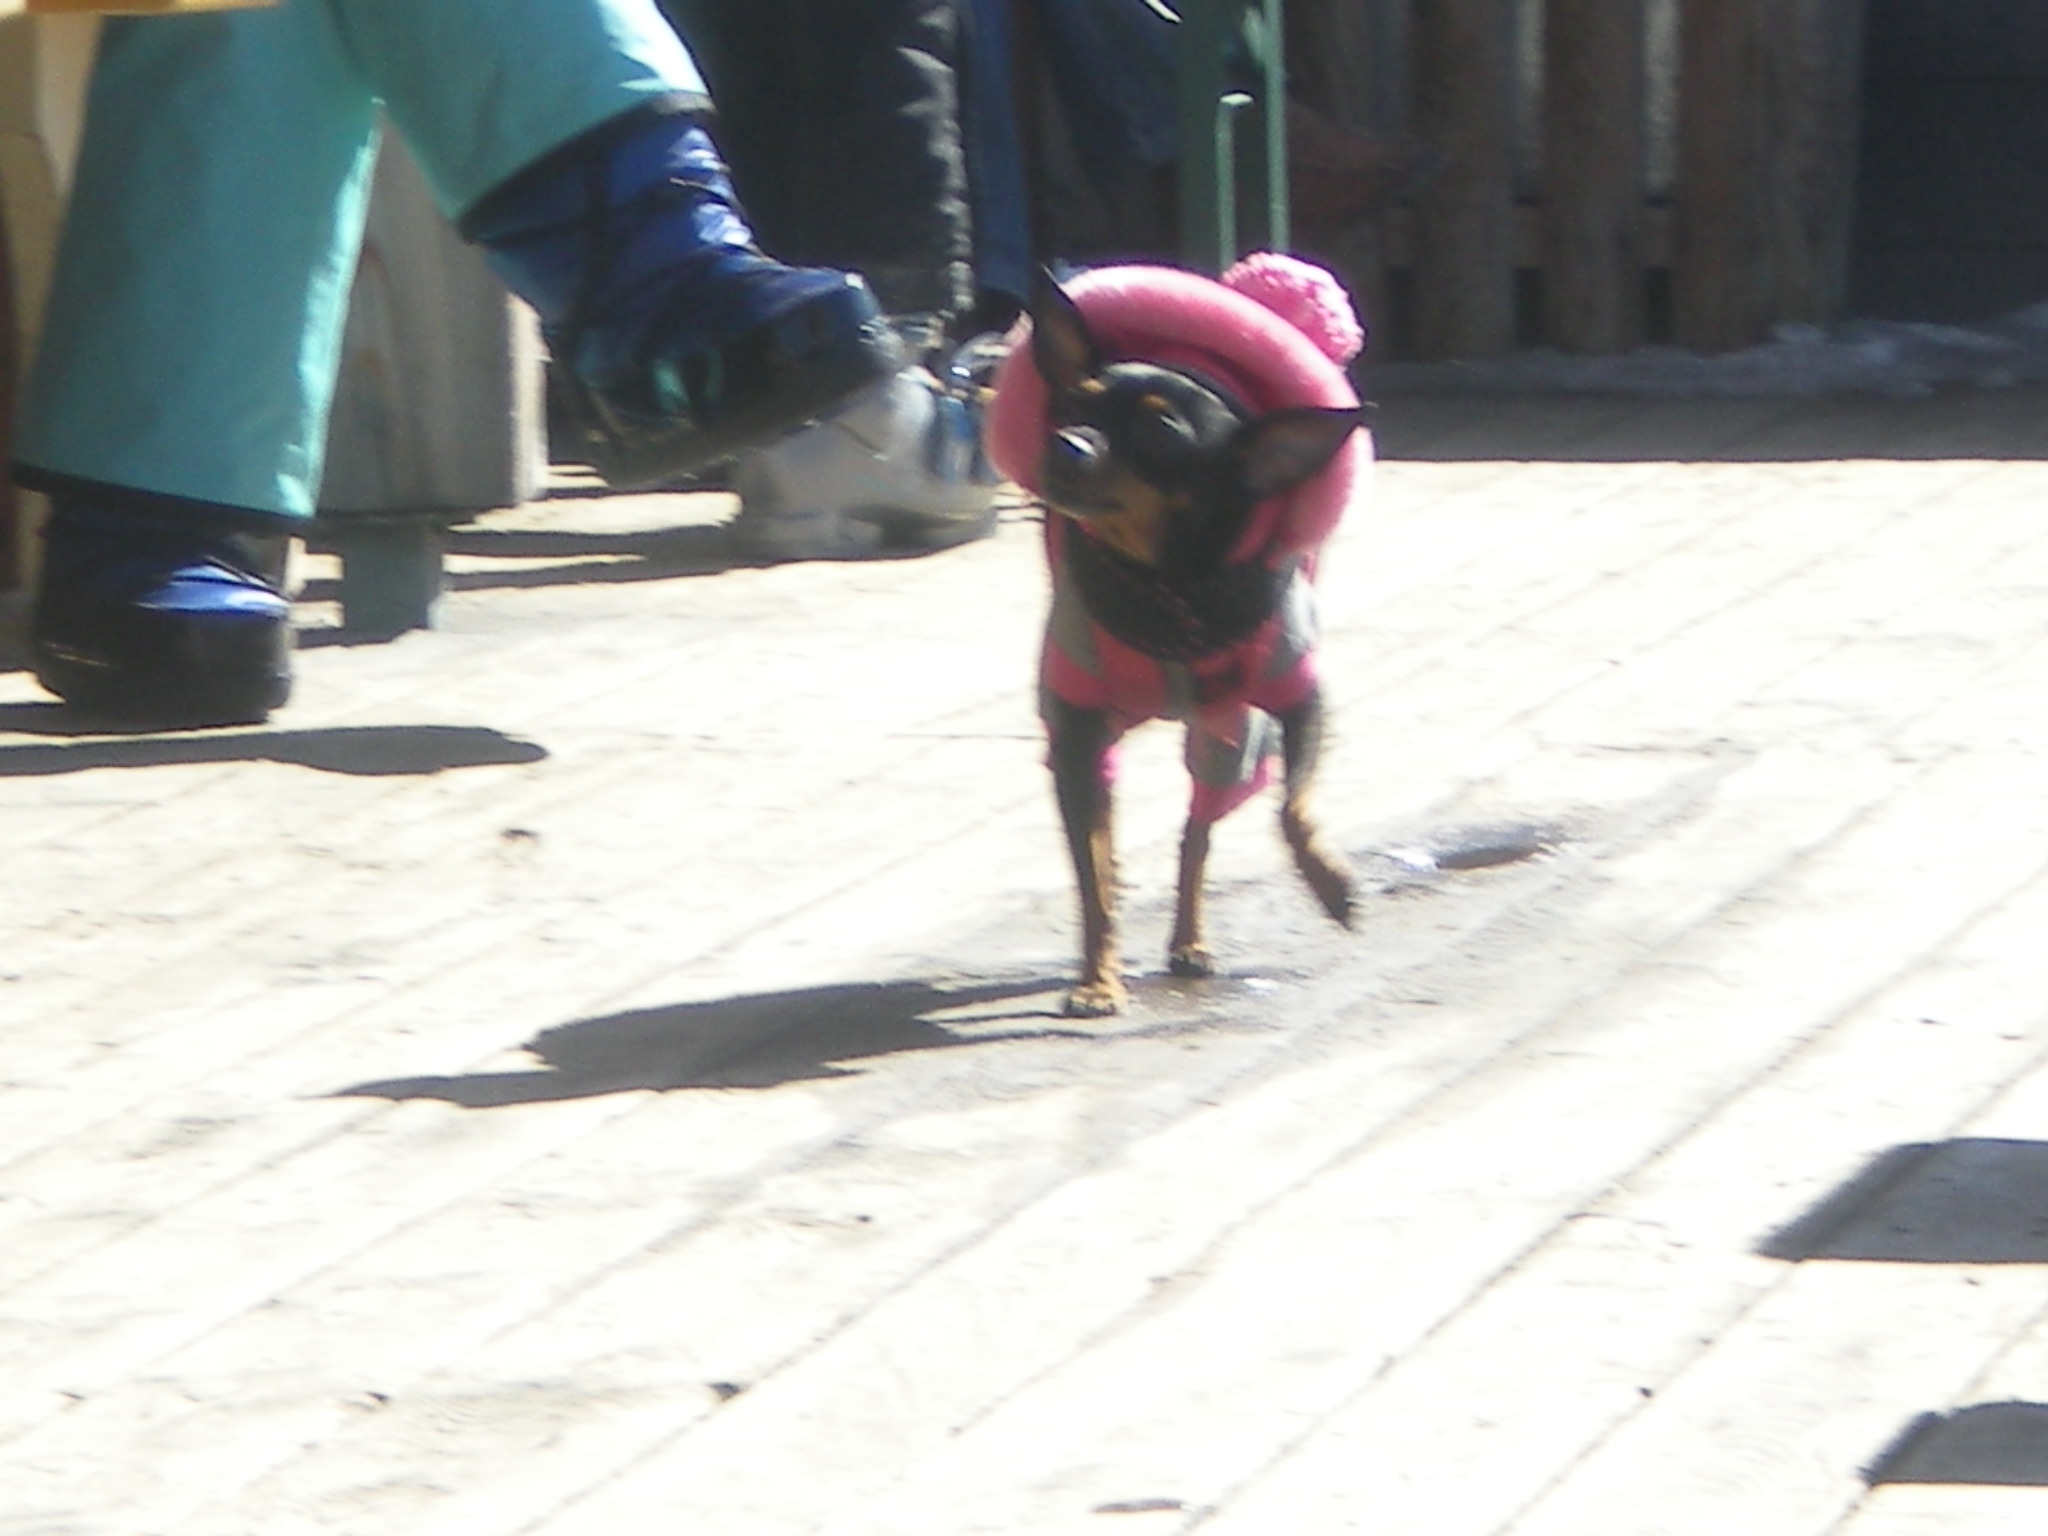 This dog had a seriously awesome hat